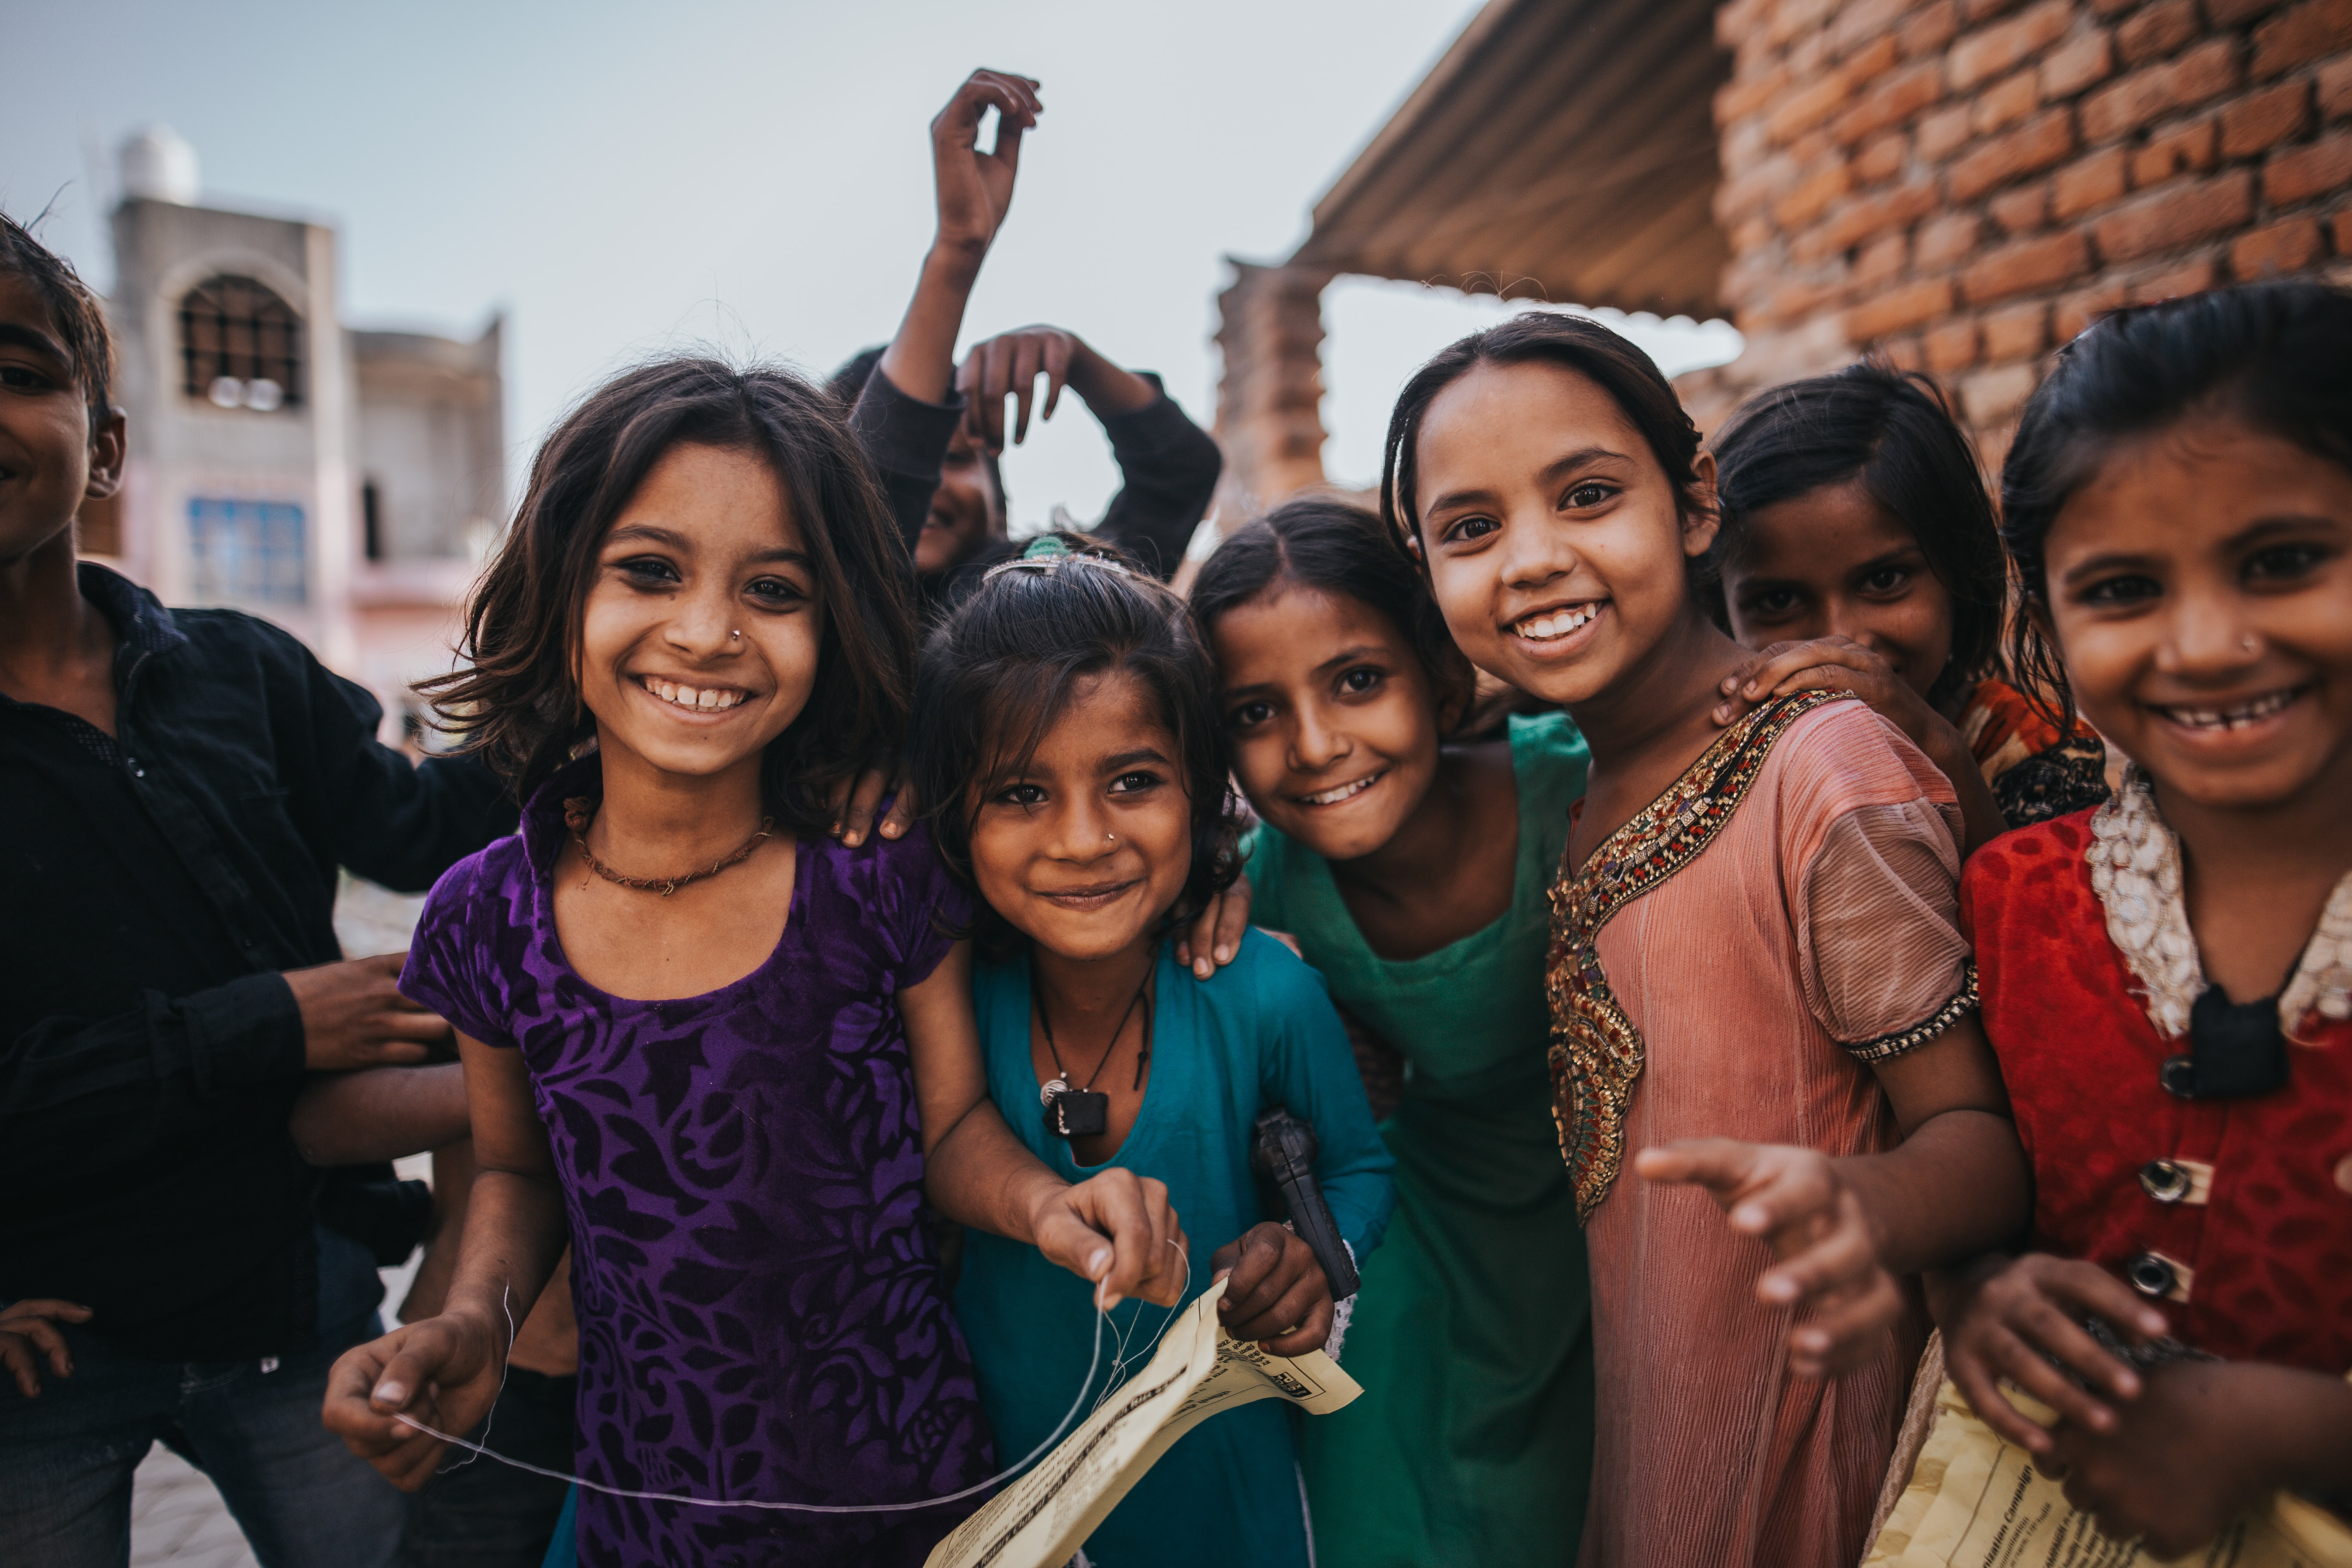 kids holding brown textile while smiling